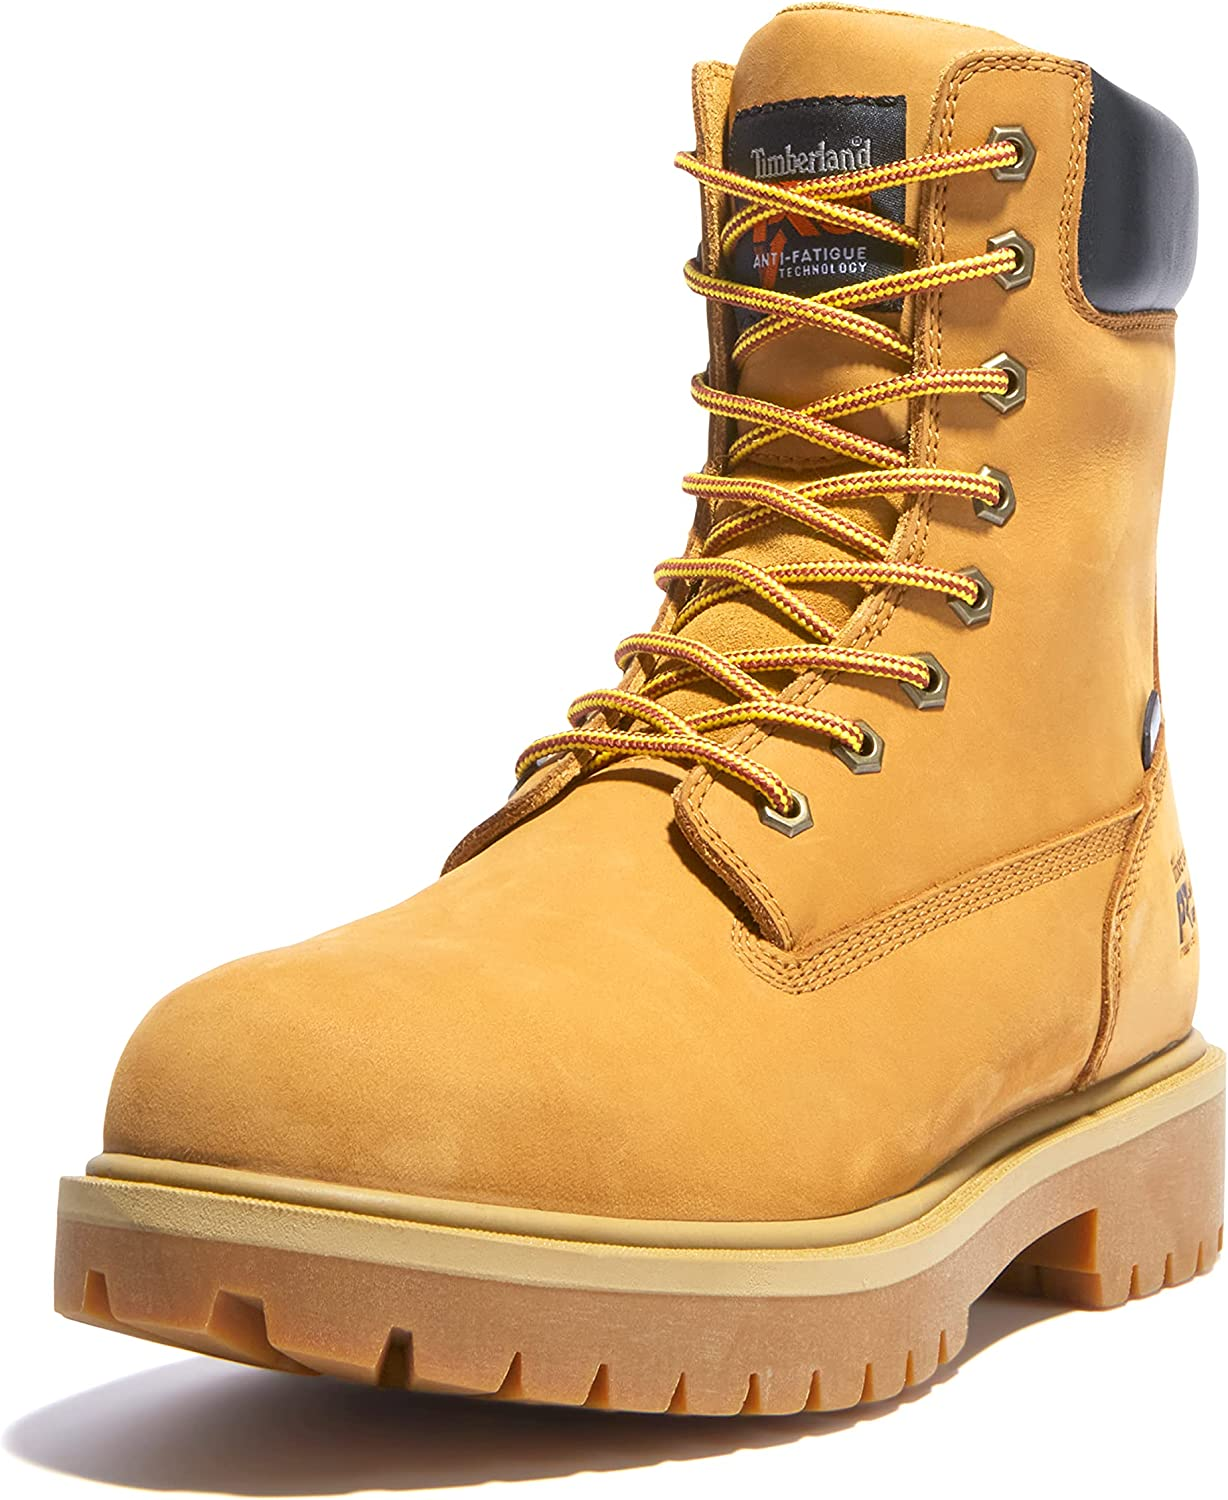 Timberland Max 87% OFF PRO 26002 Men's WP Boot Wholesale 8-in Wheat ST 400g